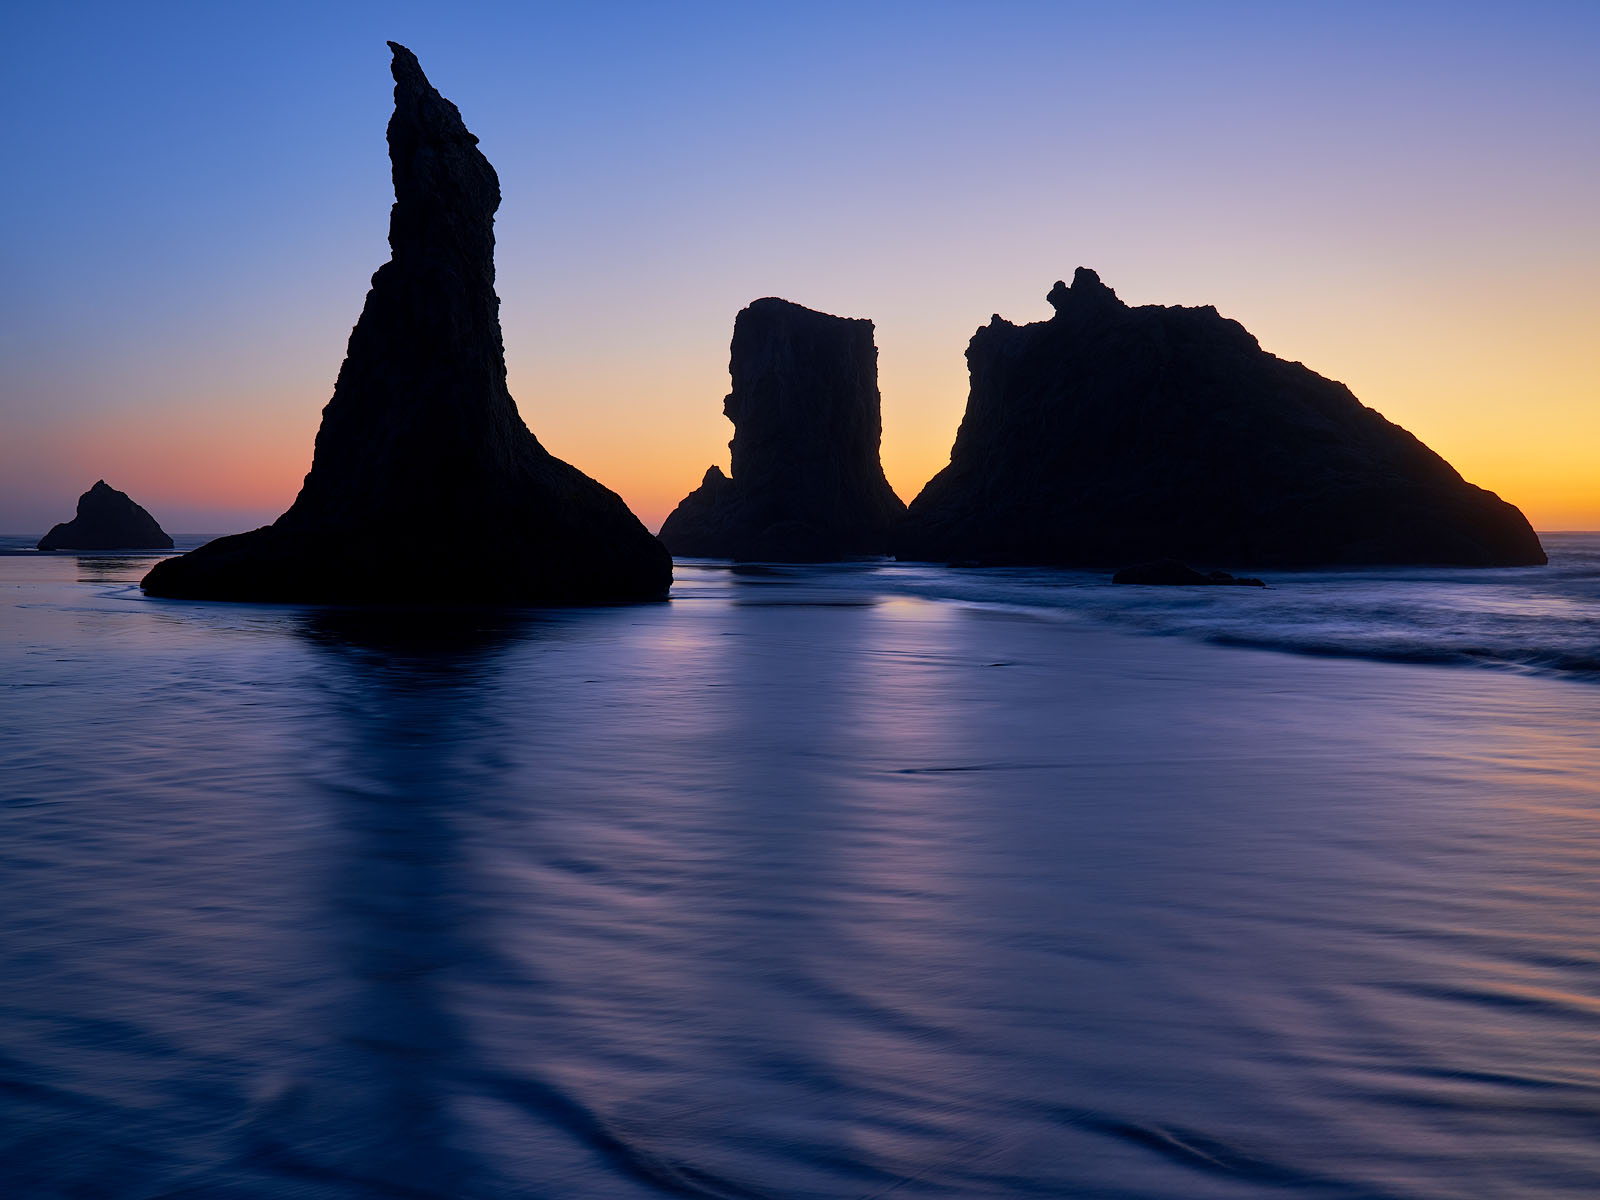 WORLD REGIONS & COUNTRIES, North America, United States of America, Oregon, IMAGE/COLOR/STYLE/FORMAT, BW/COLOR, color, environment, scenery, land, landscape, Bandon, IPTC-SUBJECT, 15000000, 15071000, , photo